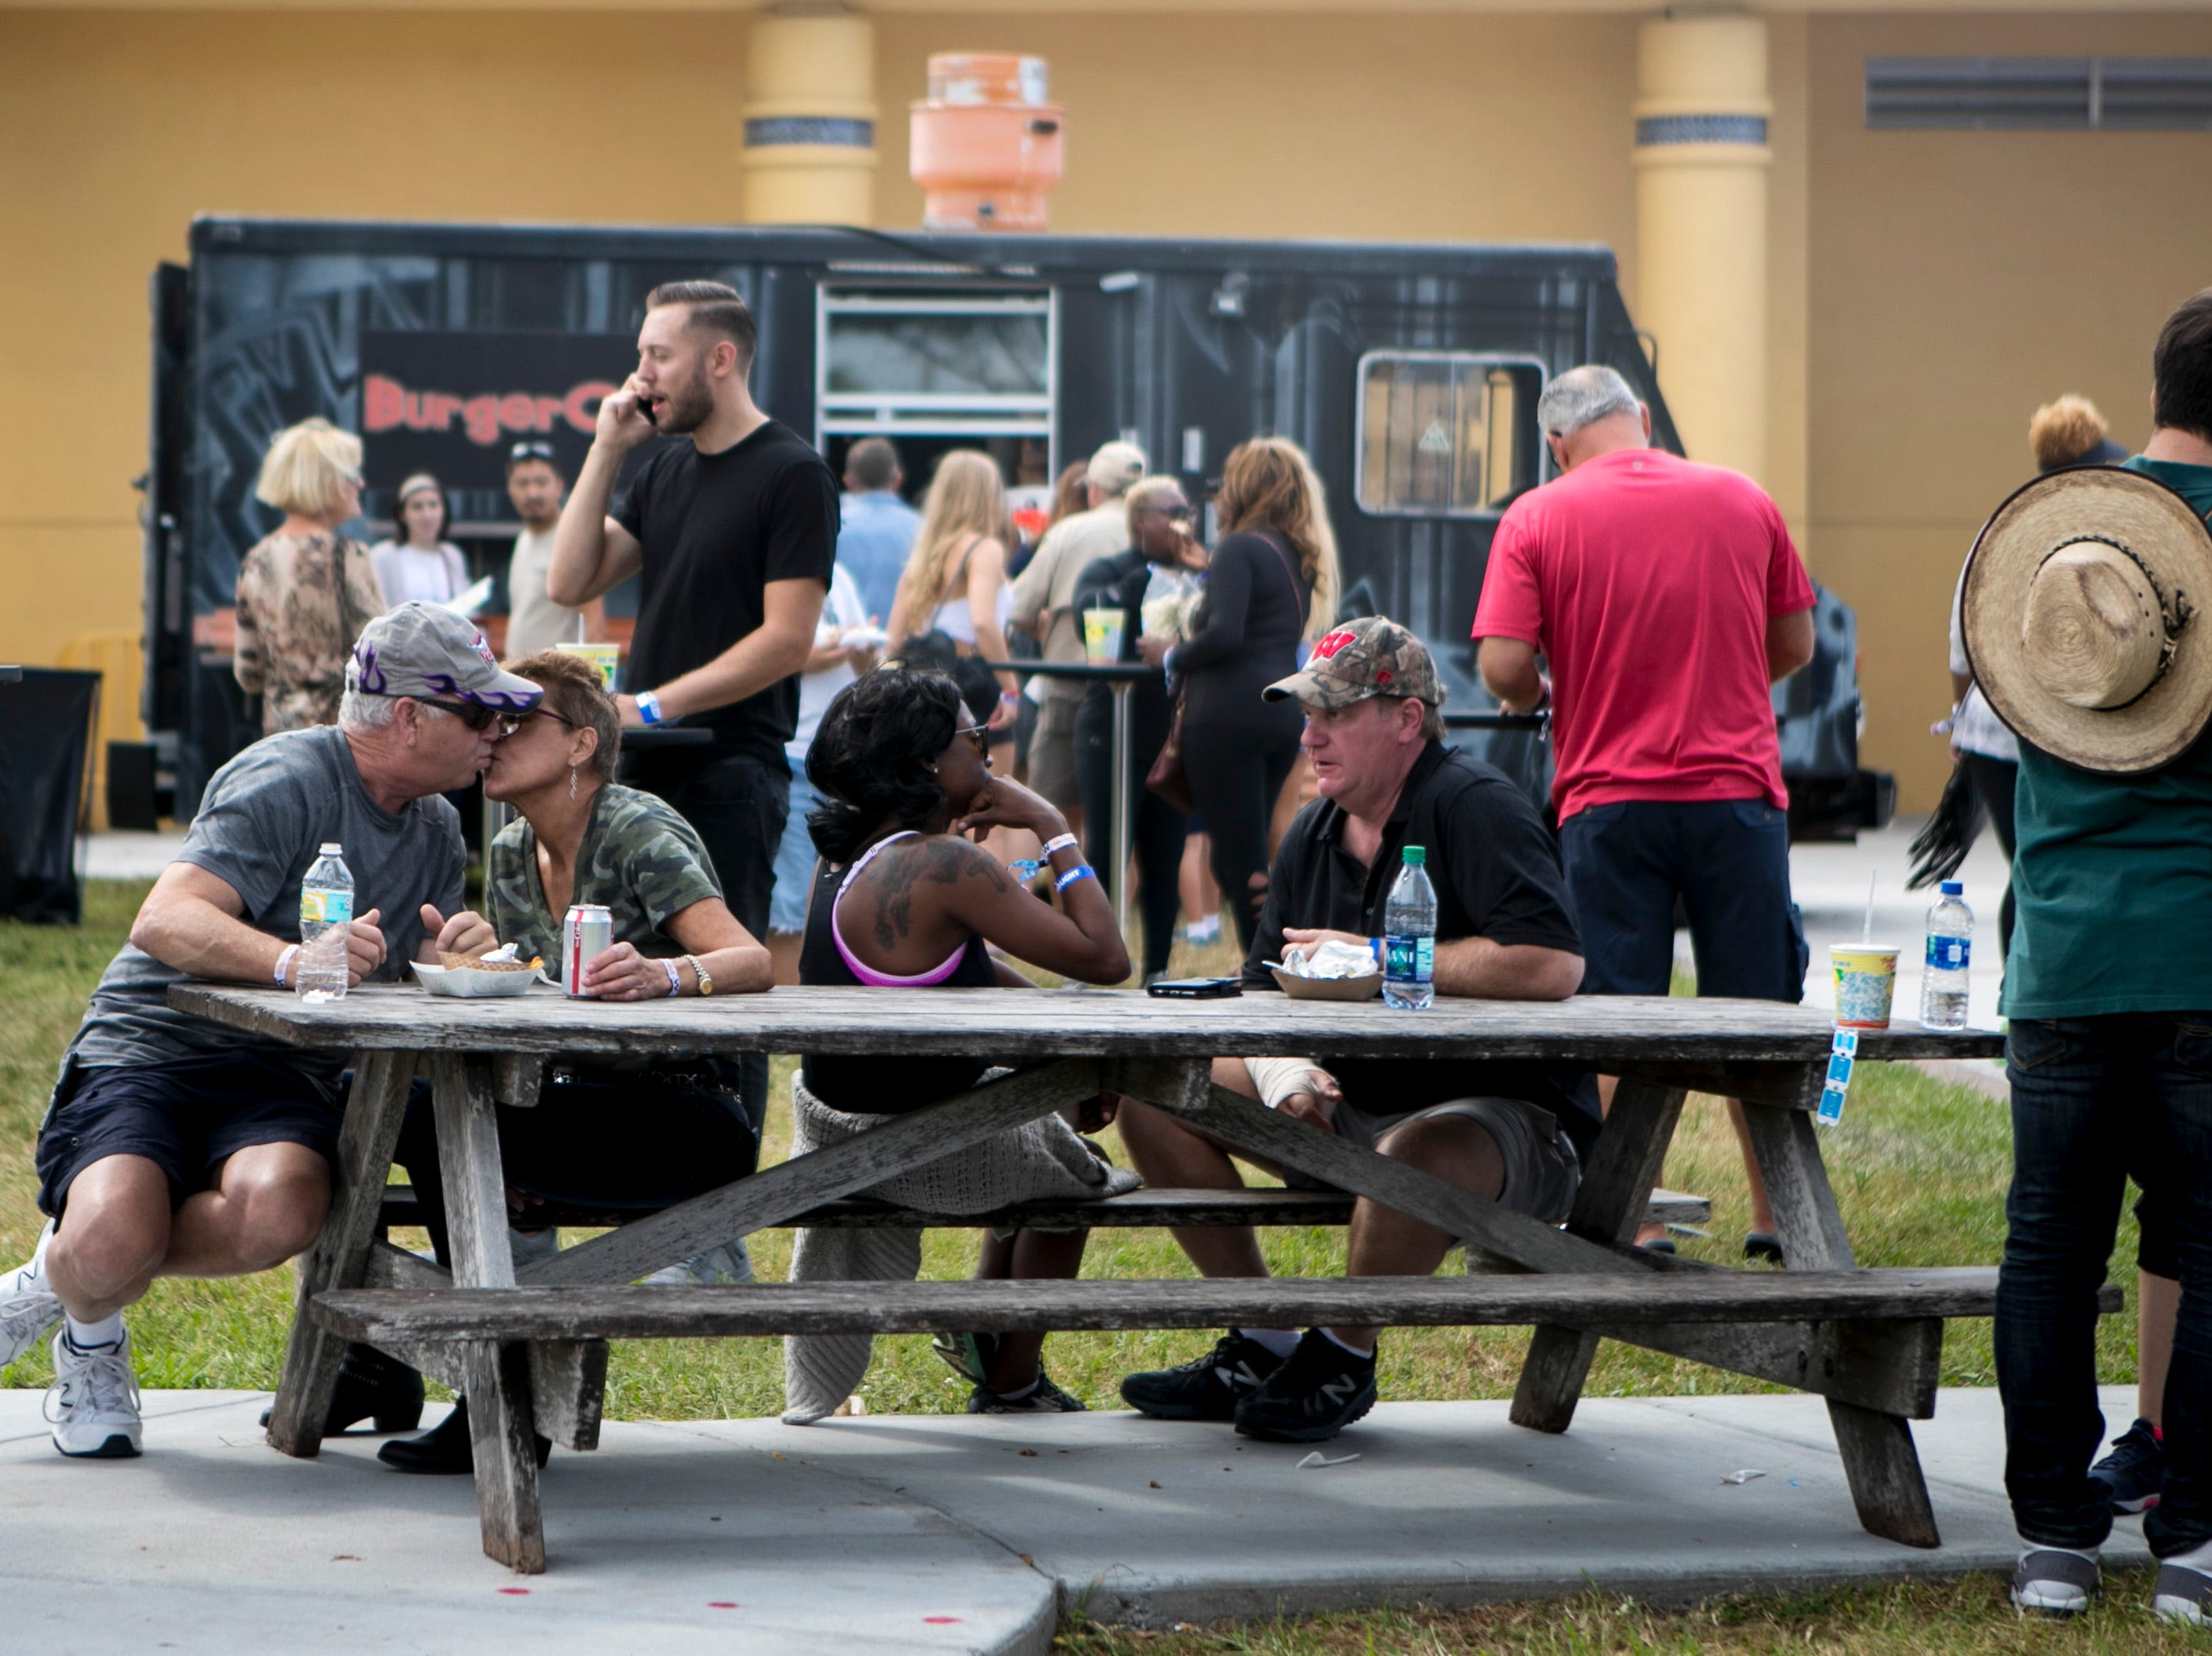 Davia and Donna Cook of Fort Myers, left, share a kiss after eating baklava at Taste of Lee Saturday afternoon at Centennial Park in Fort Myers.